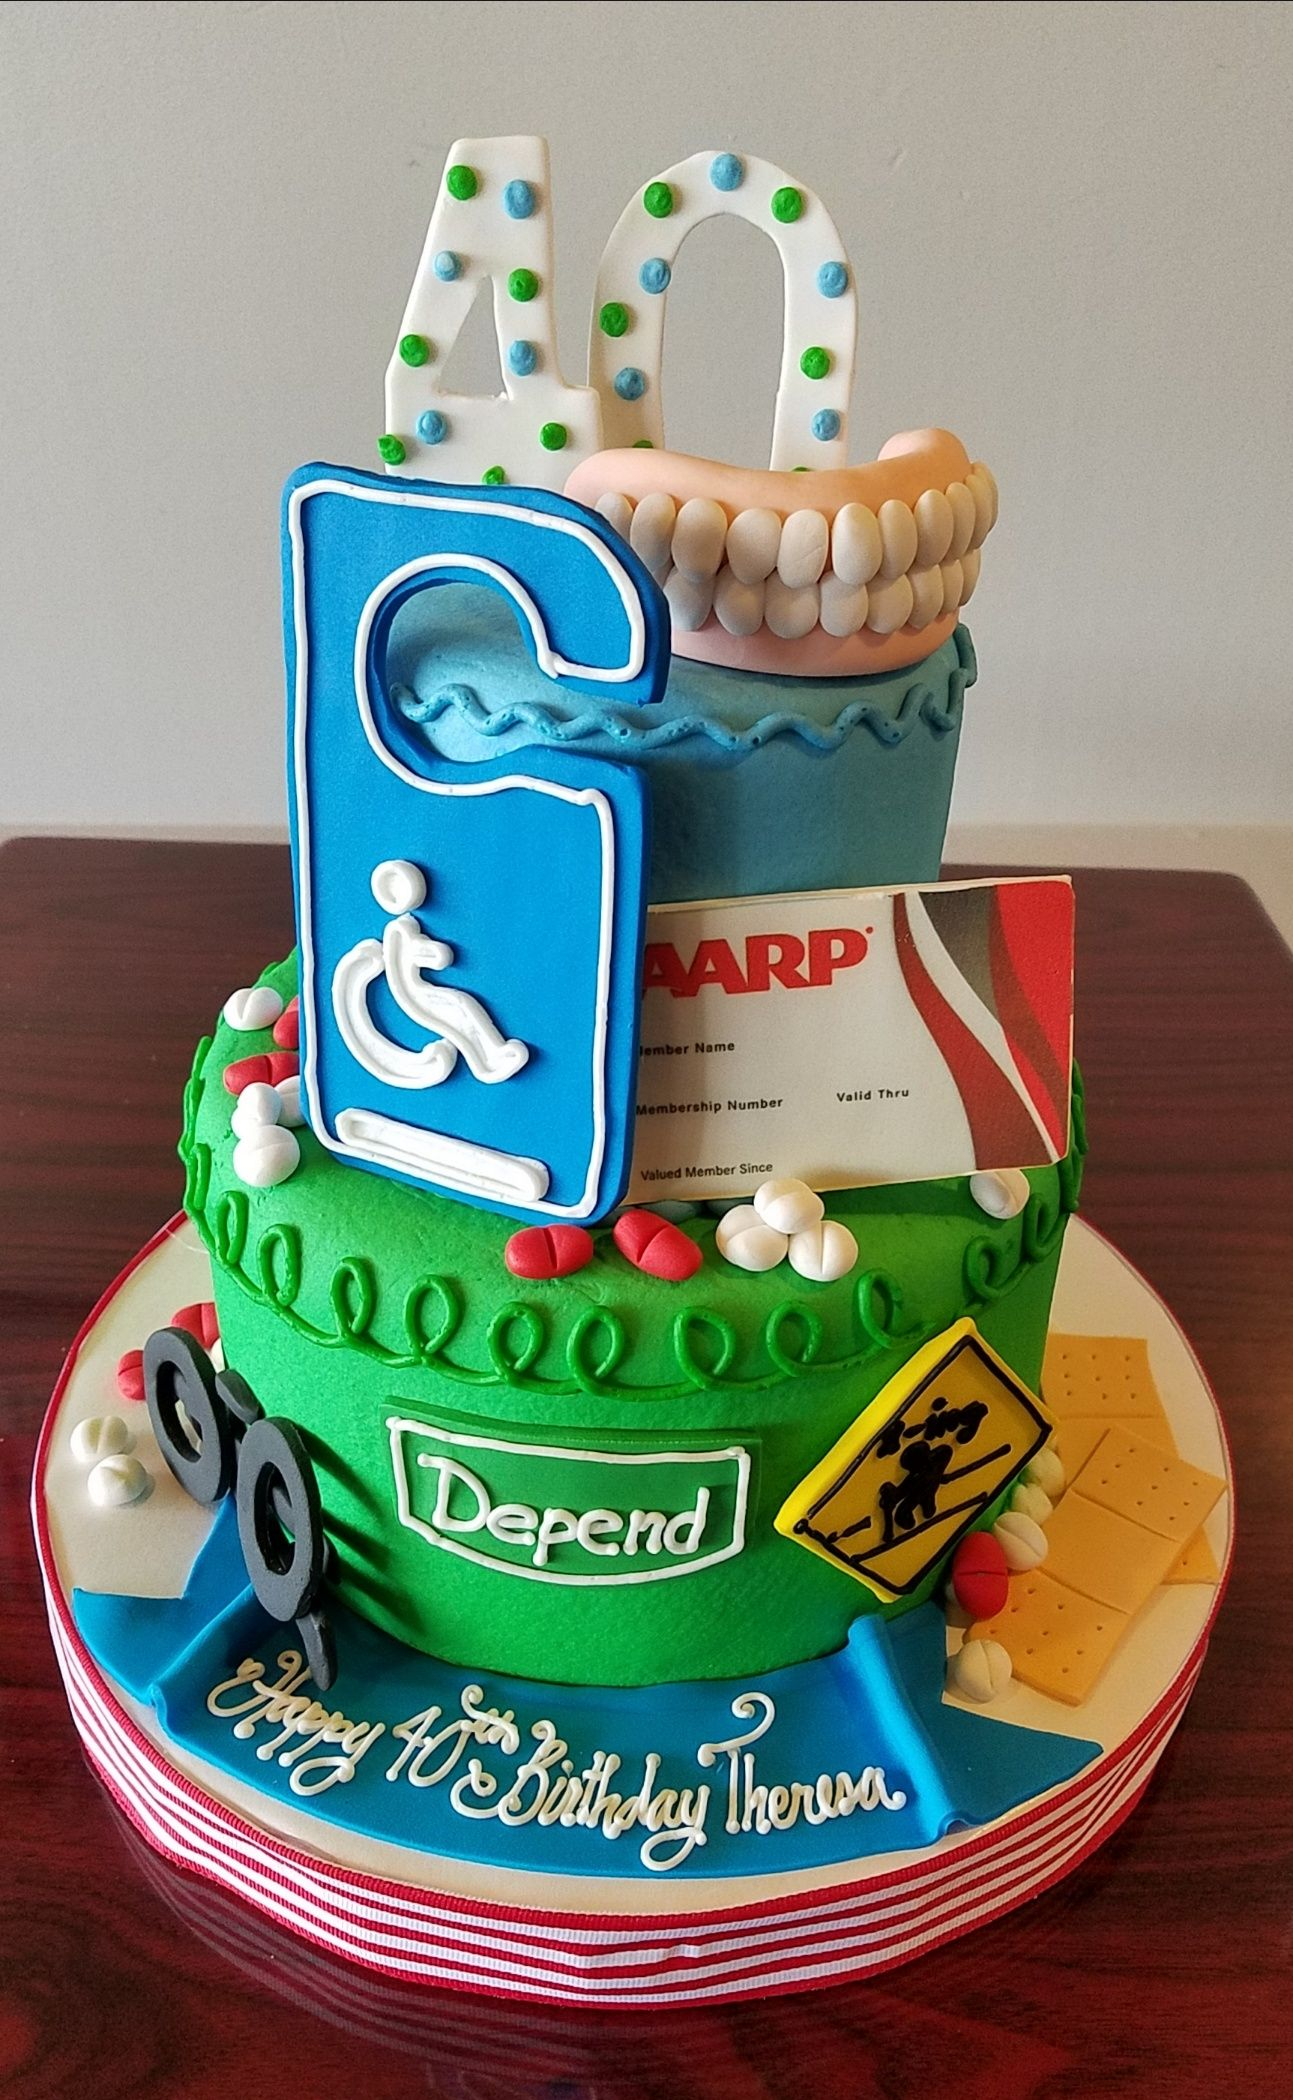 Humorous 40th birthday cake adrienne co bakery over